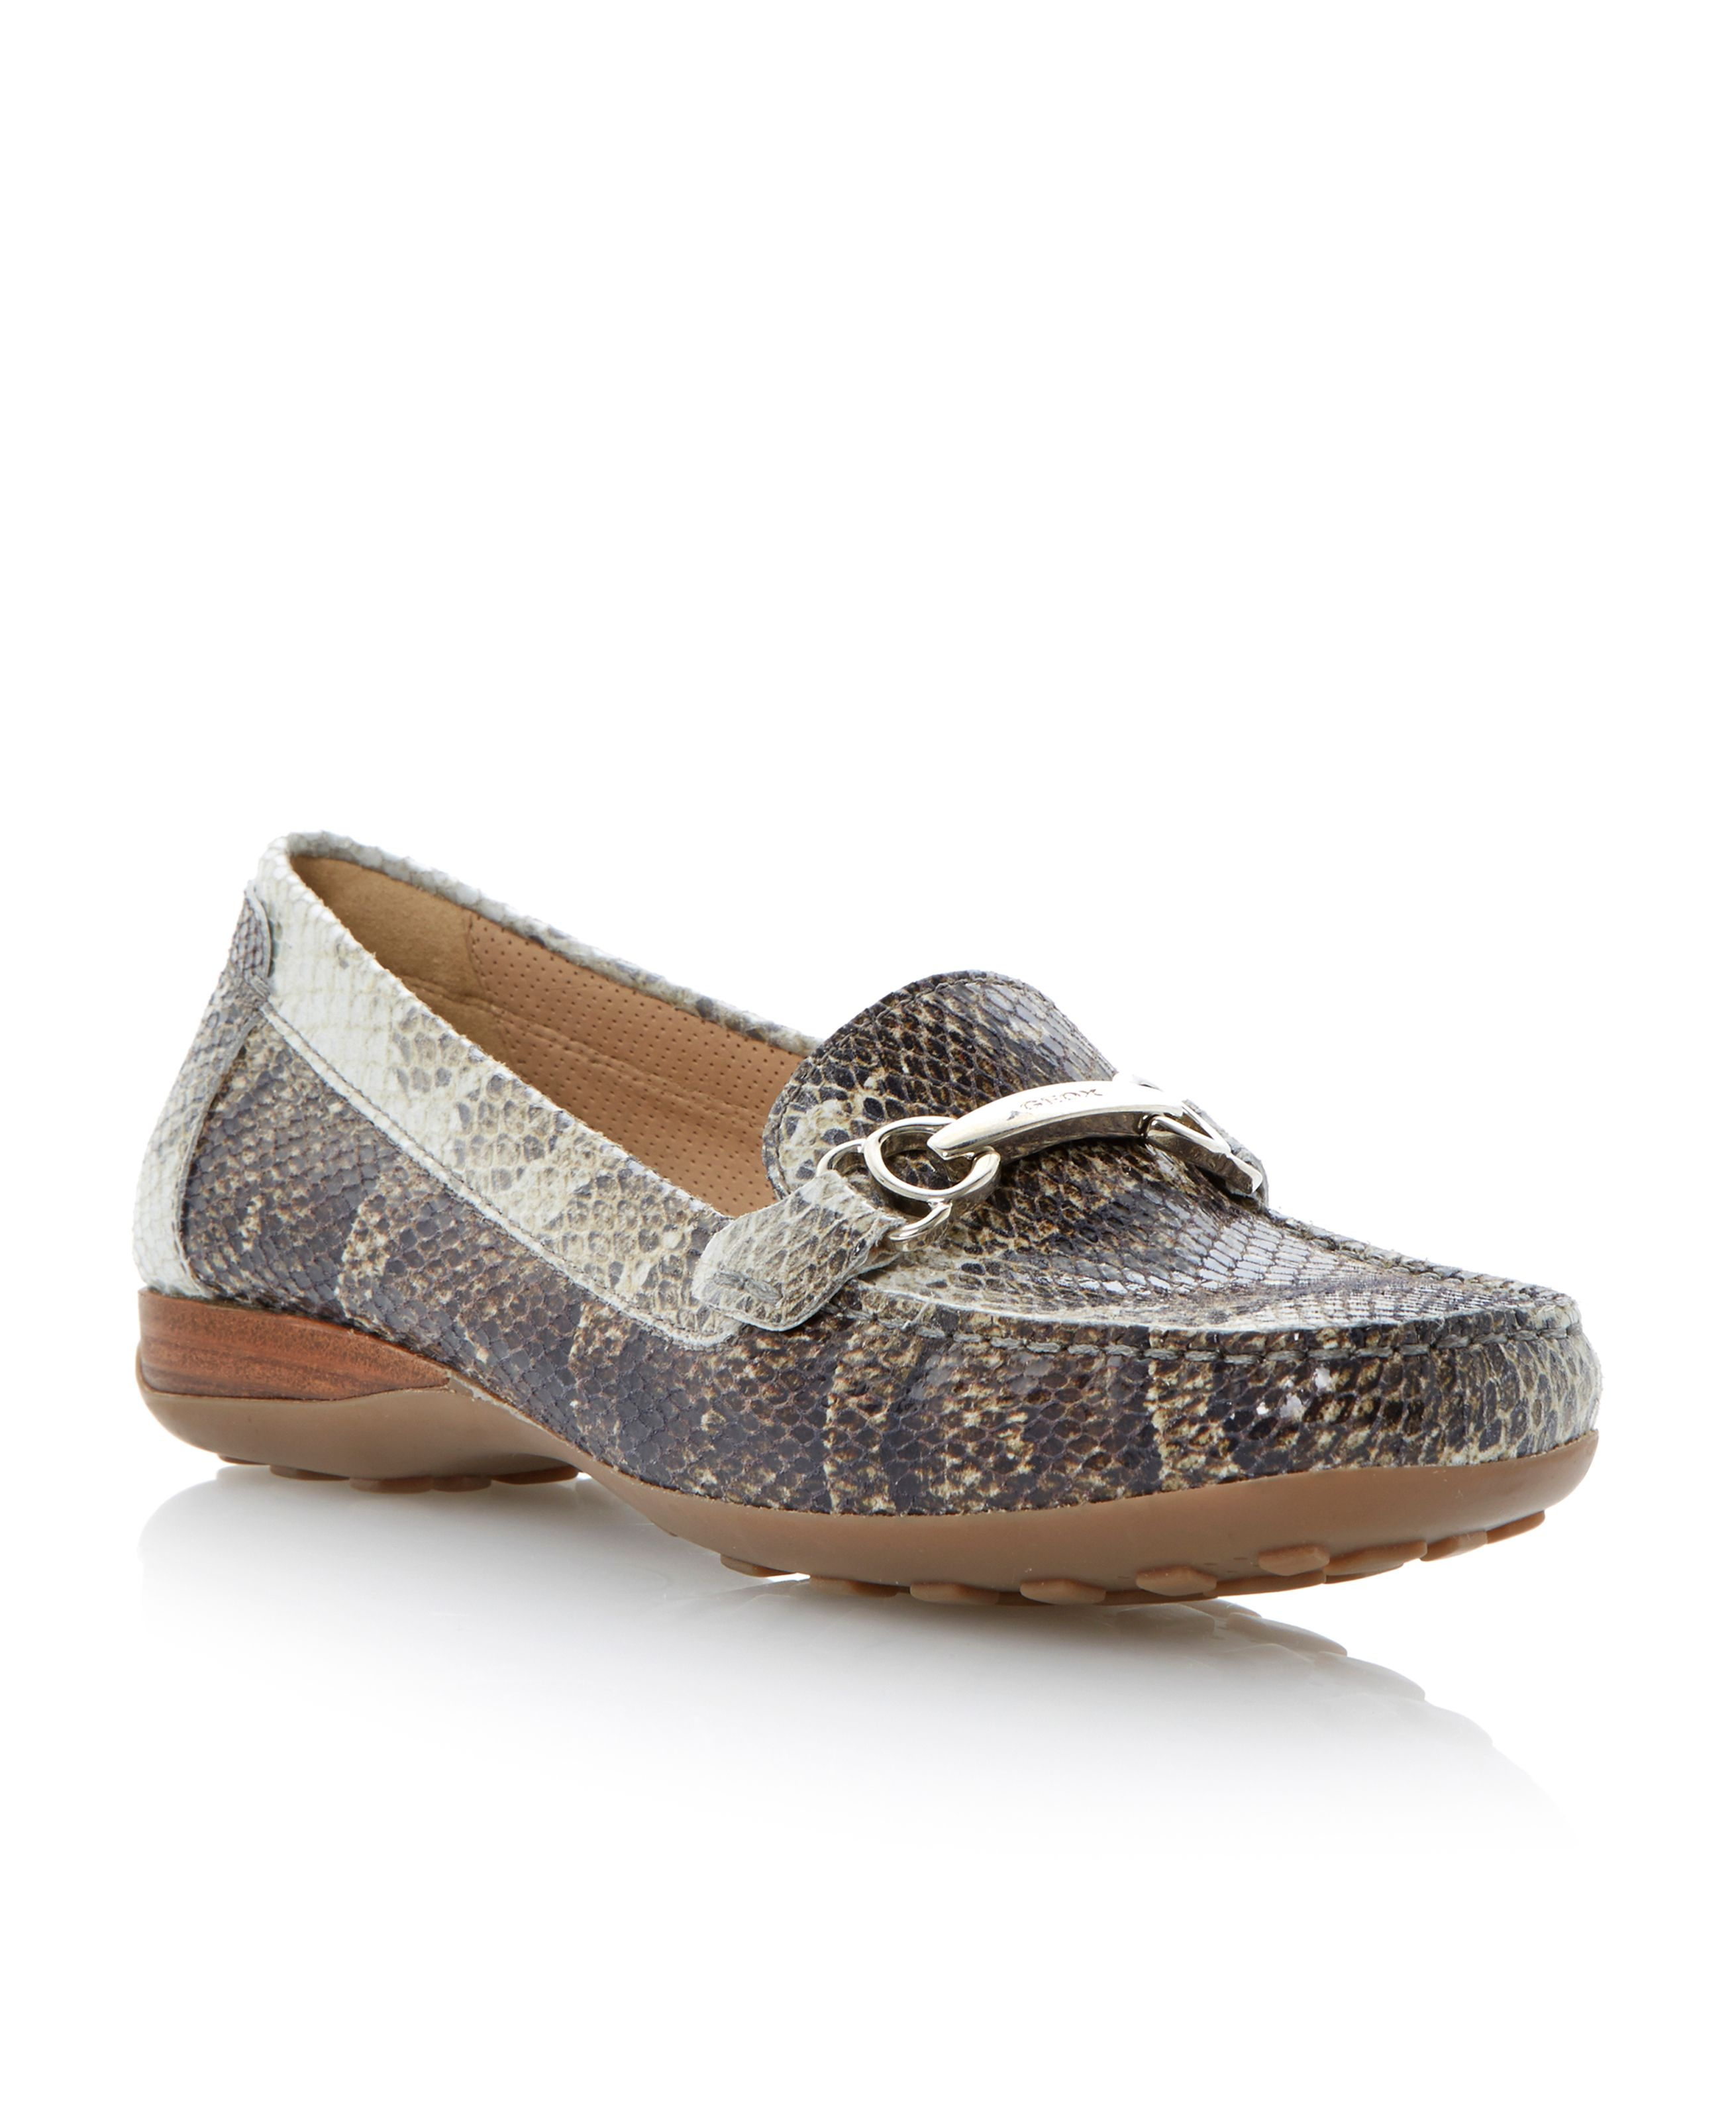 Donna euro square casual moccasin shoes